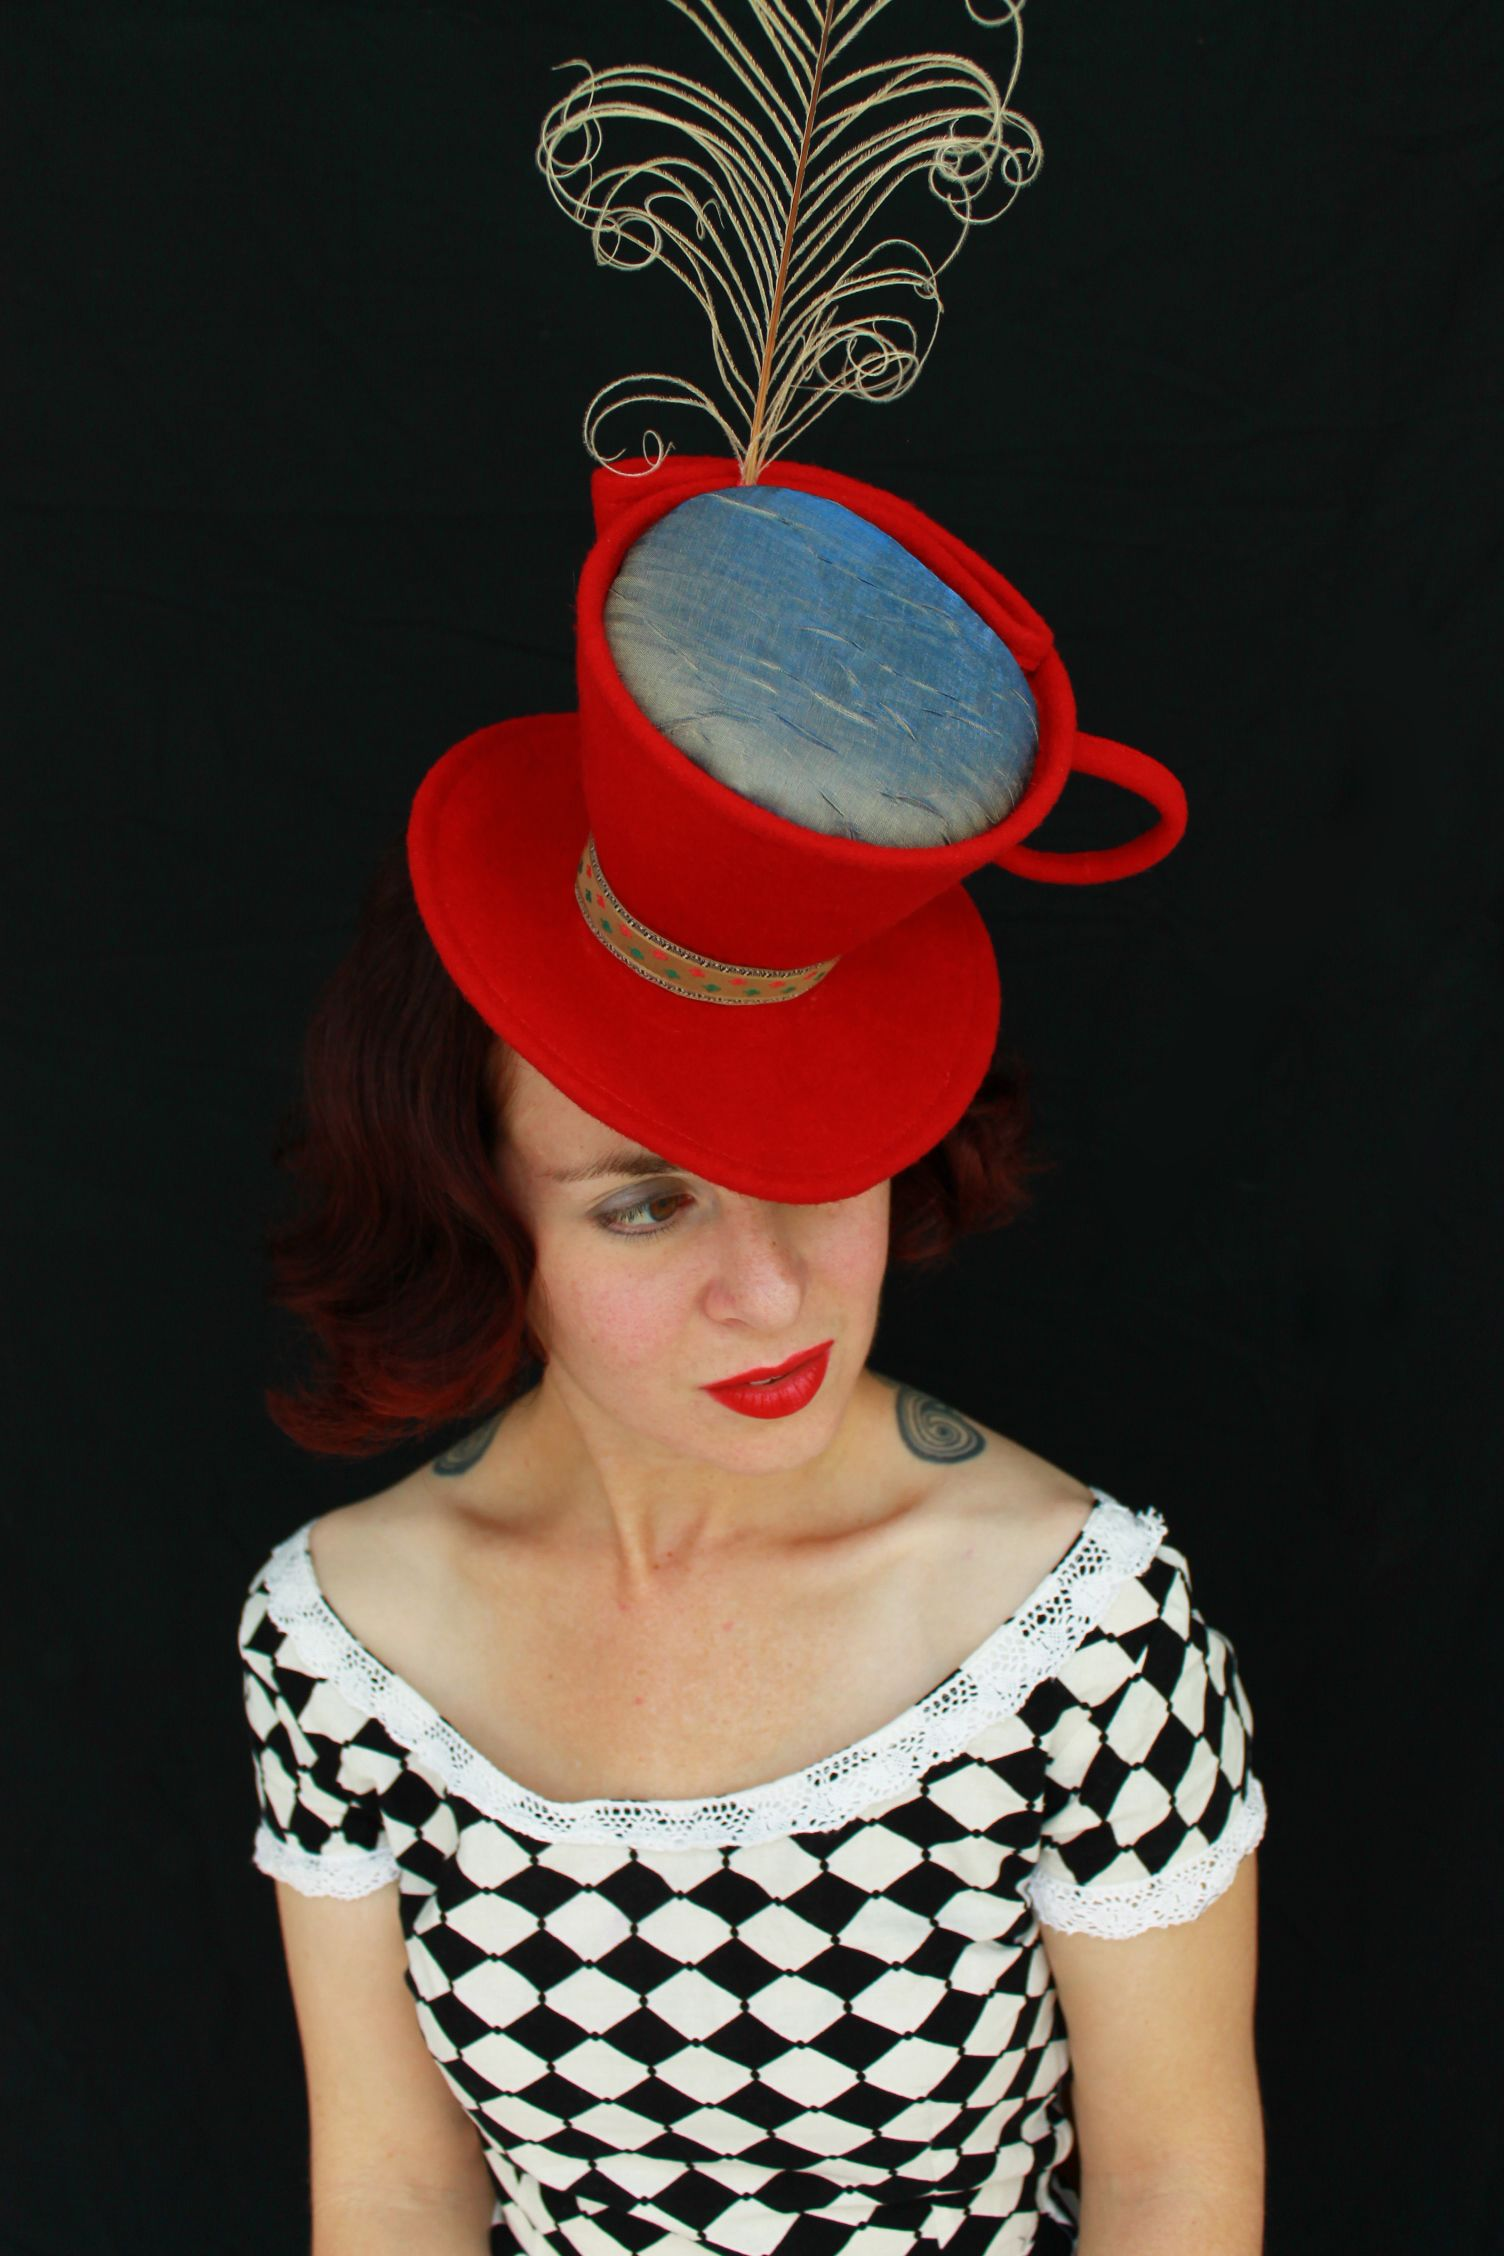 Remodel Sale In Stock Mad Hatter Tea Cup Red Felt Tilt Hat With